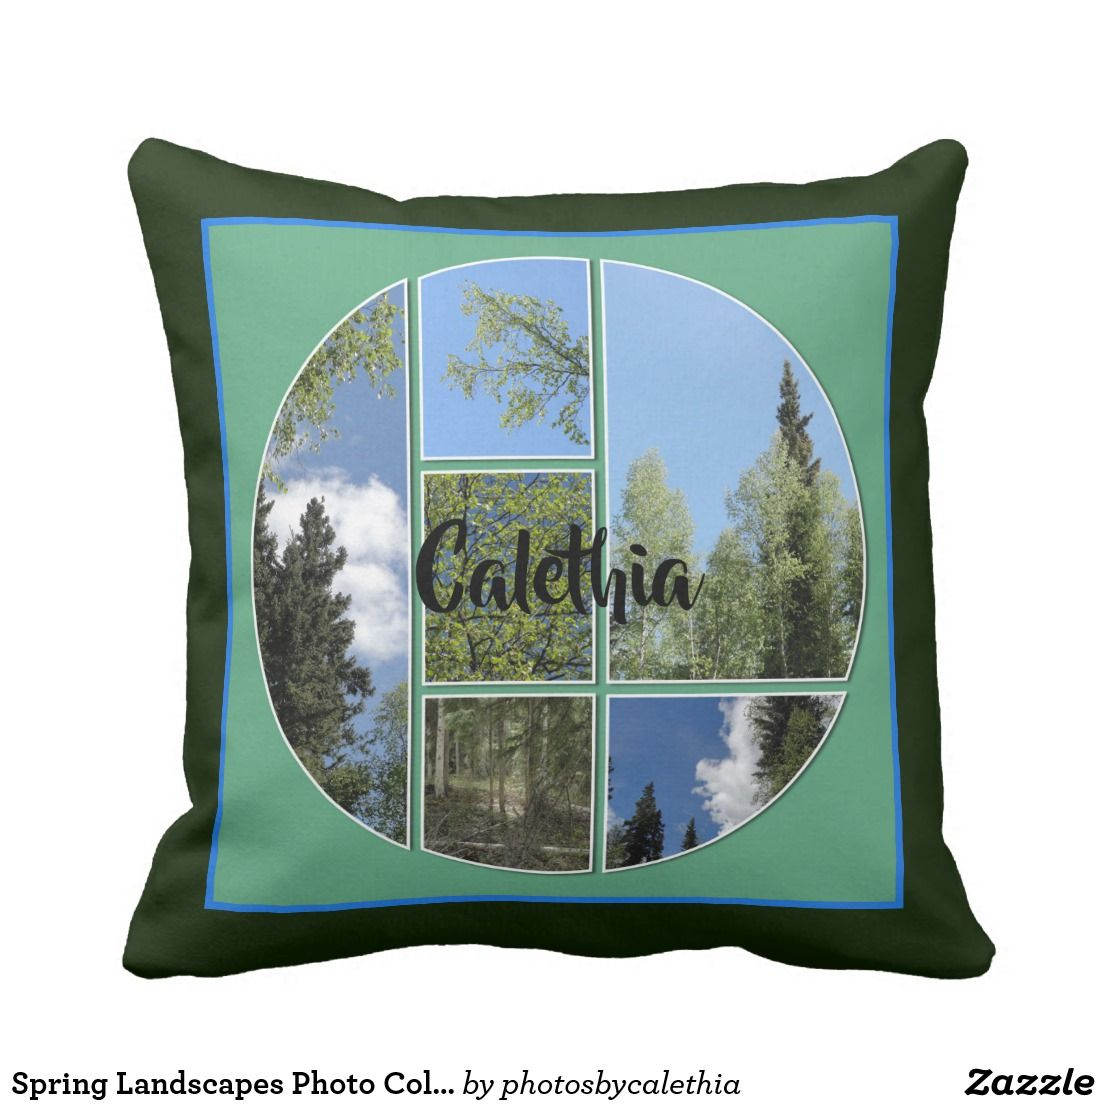 Spring Landscapes Photo Collage Personalize Throw Pillow Zazzle Com Throw Pillows Personalized Throw Pillow Pillows